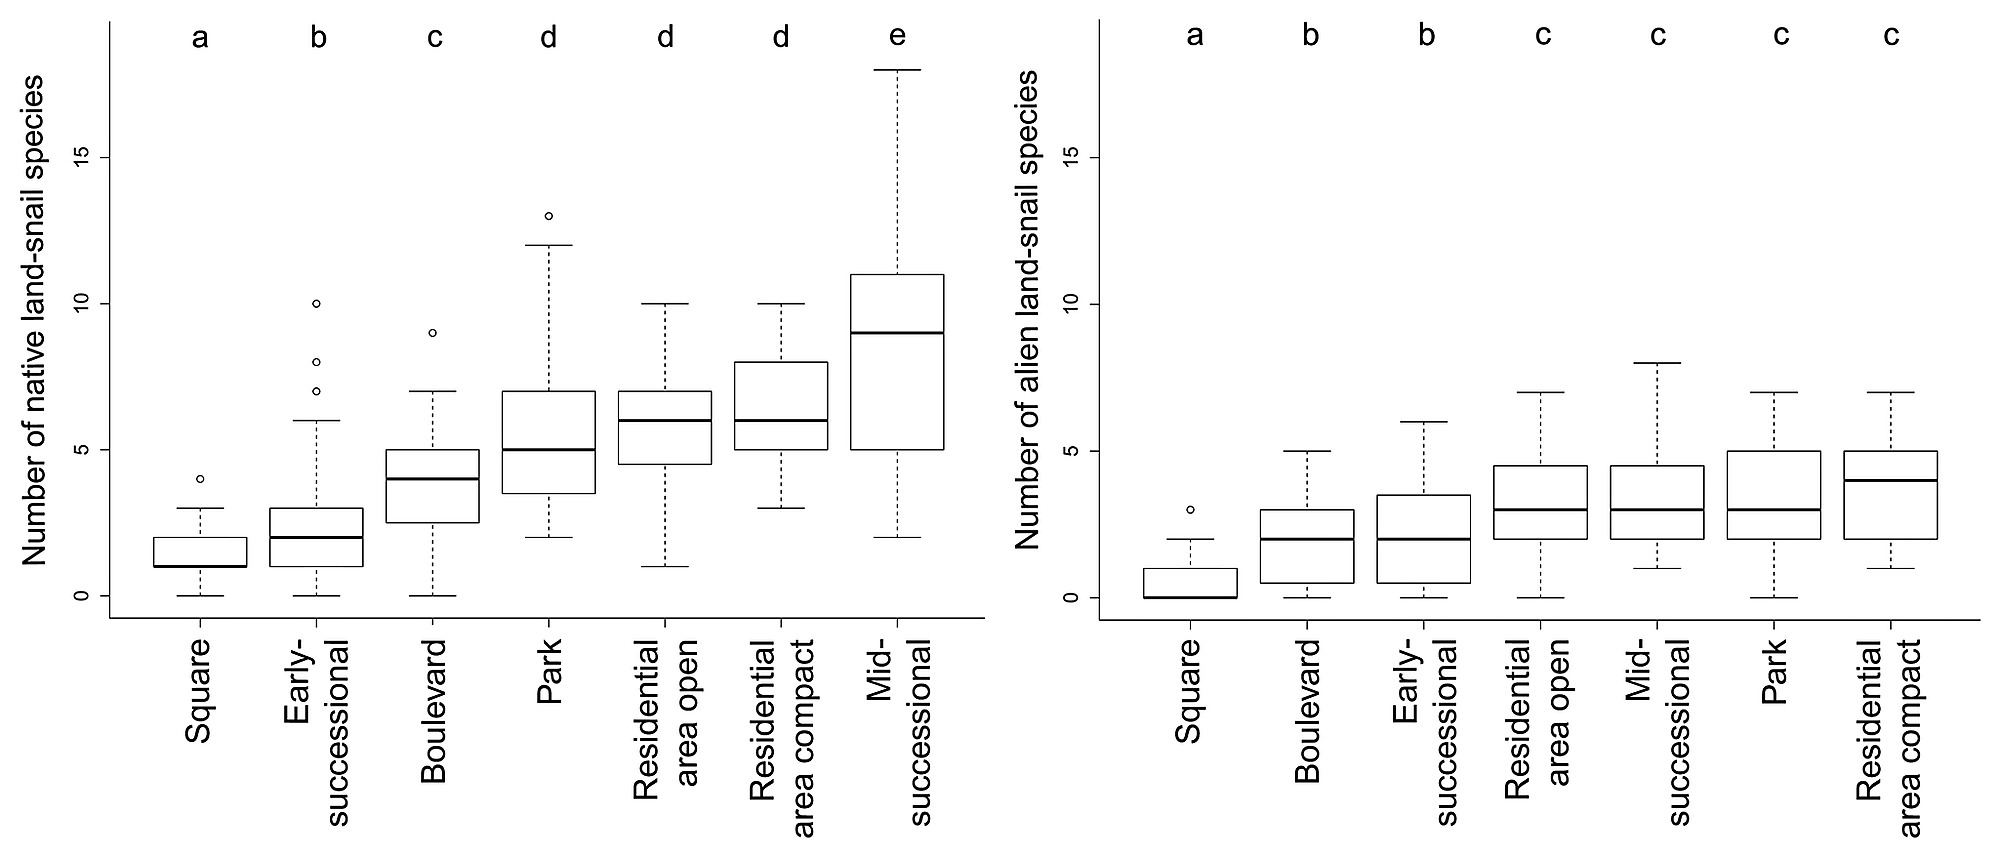 variation in numbers of native (left) and alien (right) land-snail species  among the studied habitat types